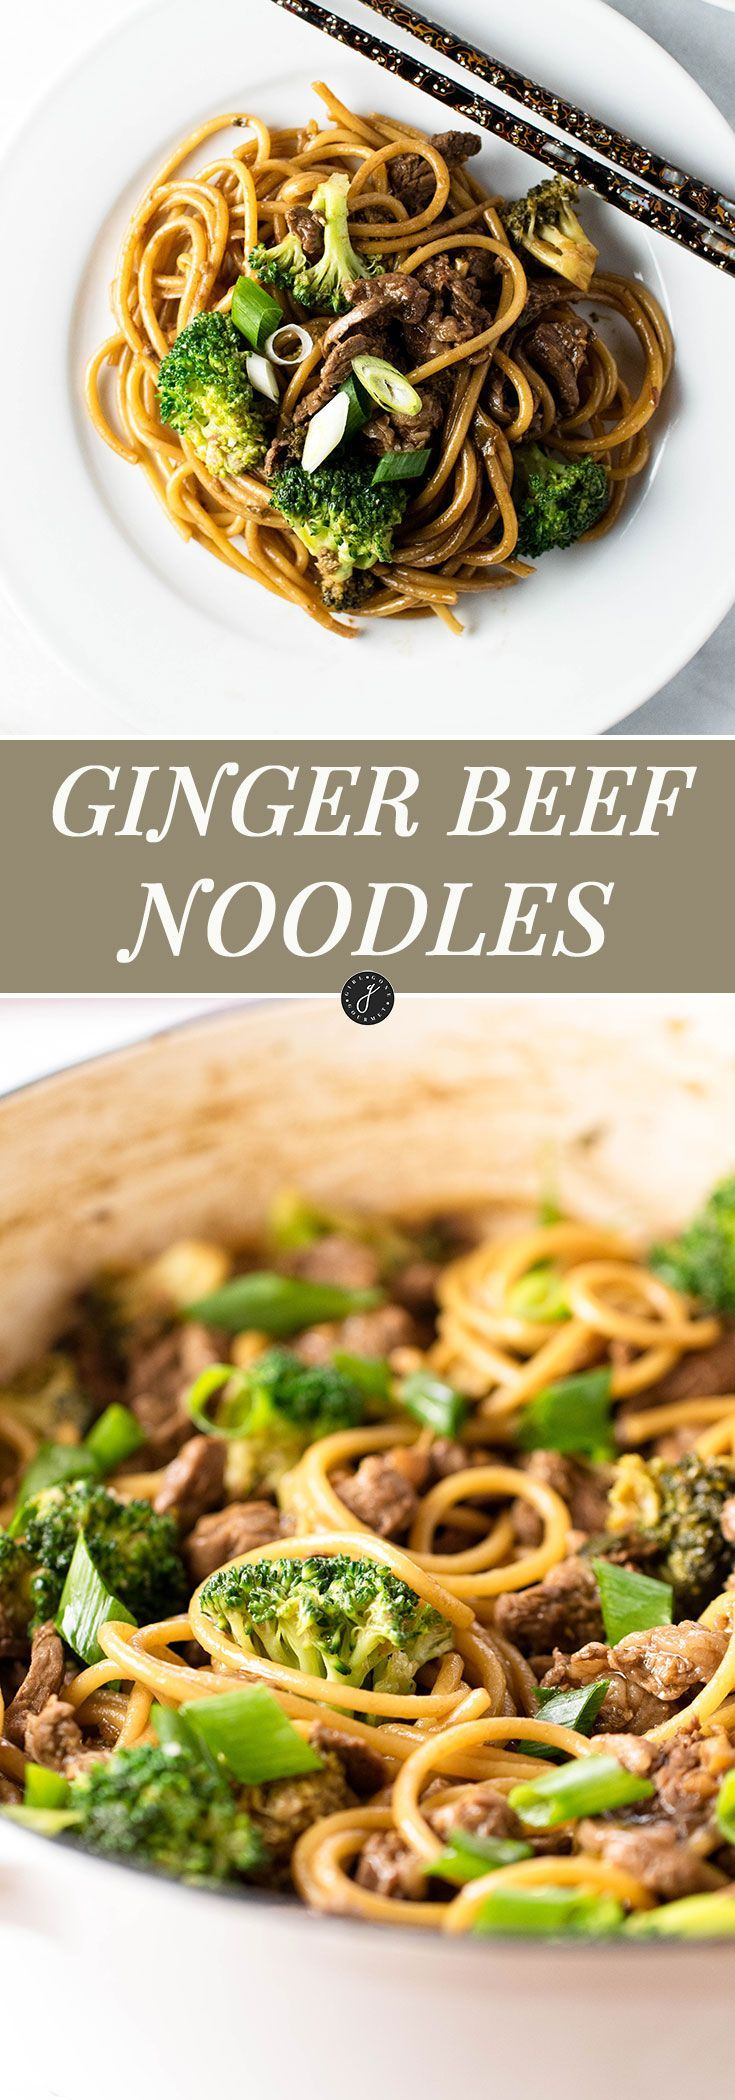 30-Minutes is all you need for these ginger beef noodles | girlgonegourmet.com via @Girl Gone Gourmet